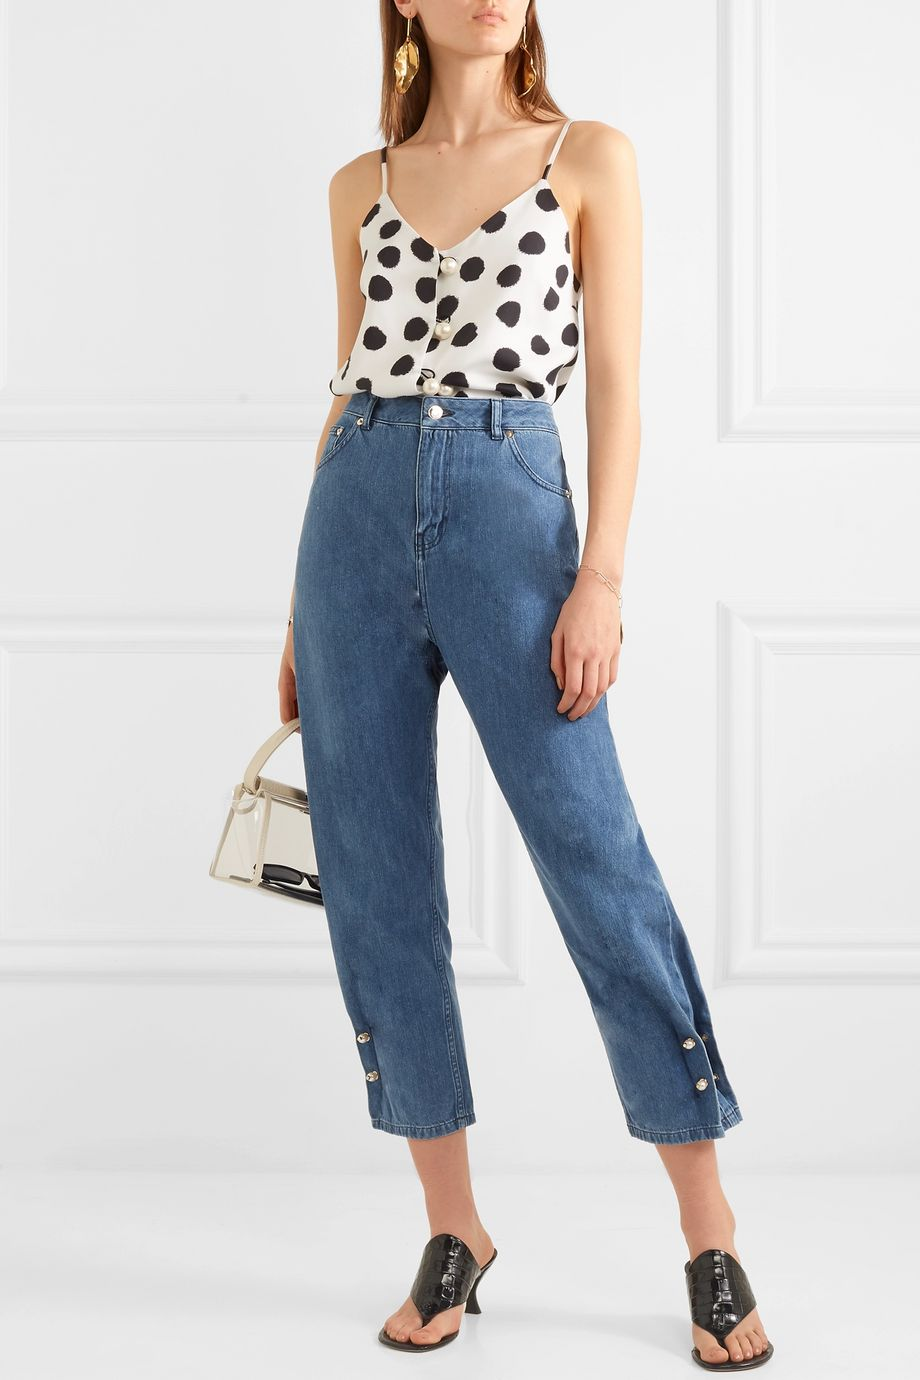 Mother of Pearl + NET SUSTAIN Kyra faux pearl-embellished high-rise tapered jeans